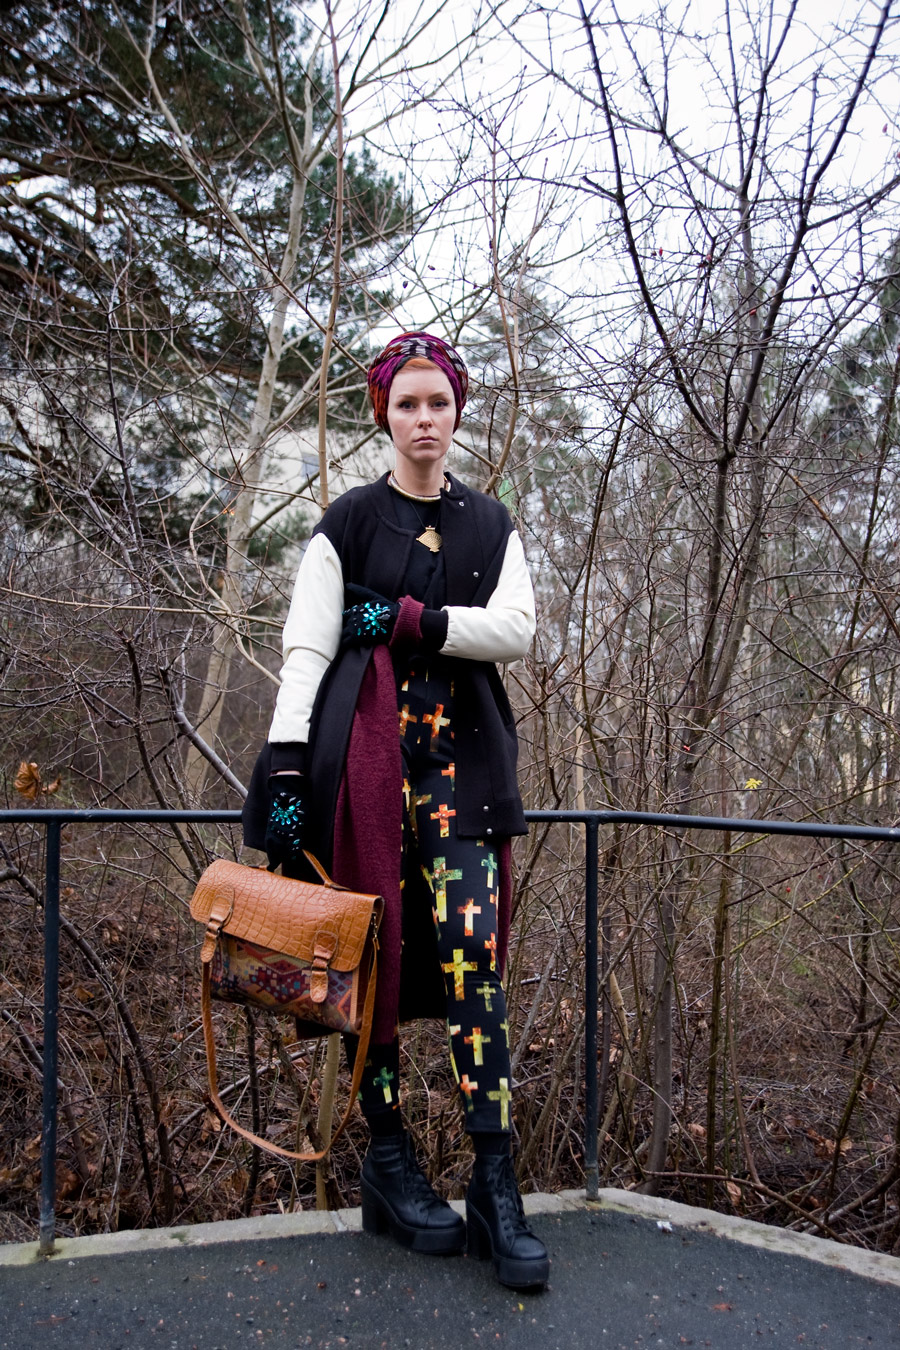 maggie.wood.turban.stockholm.fashionjunk